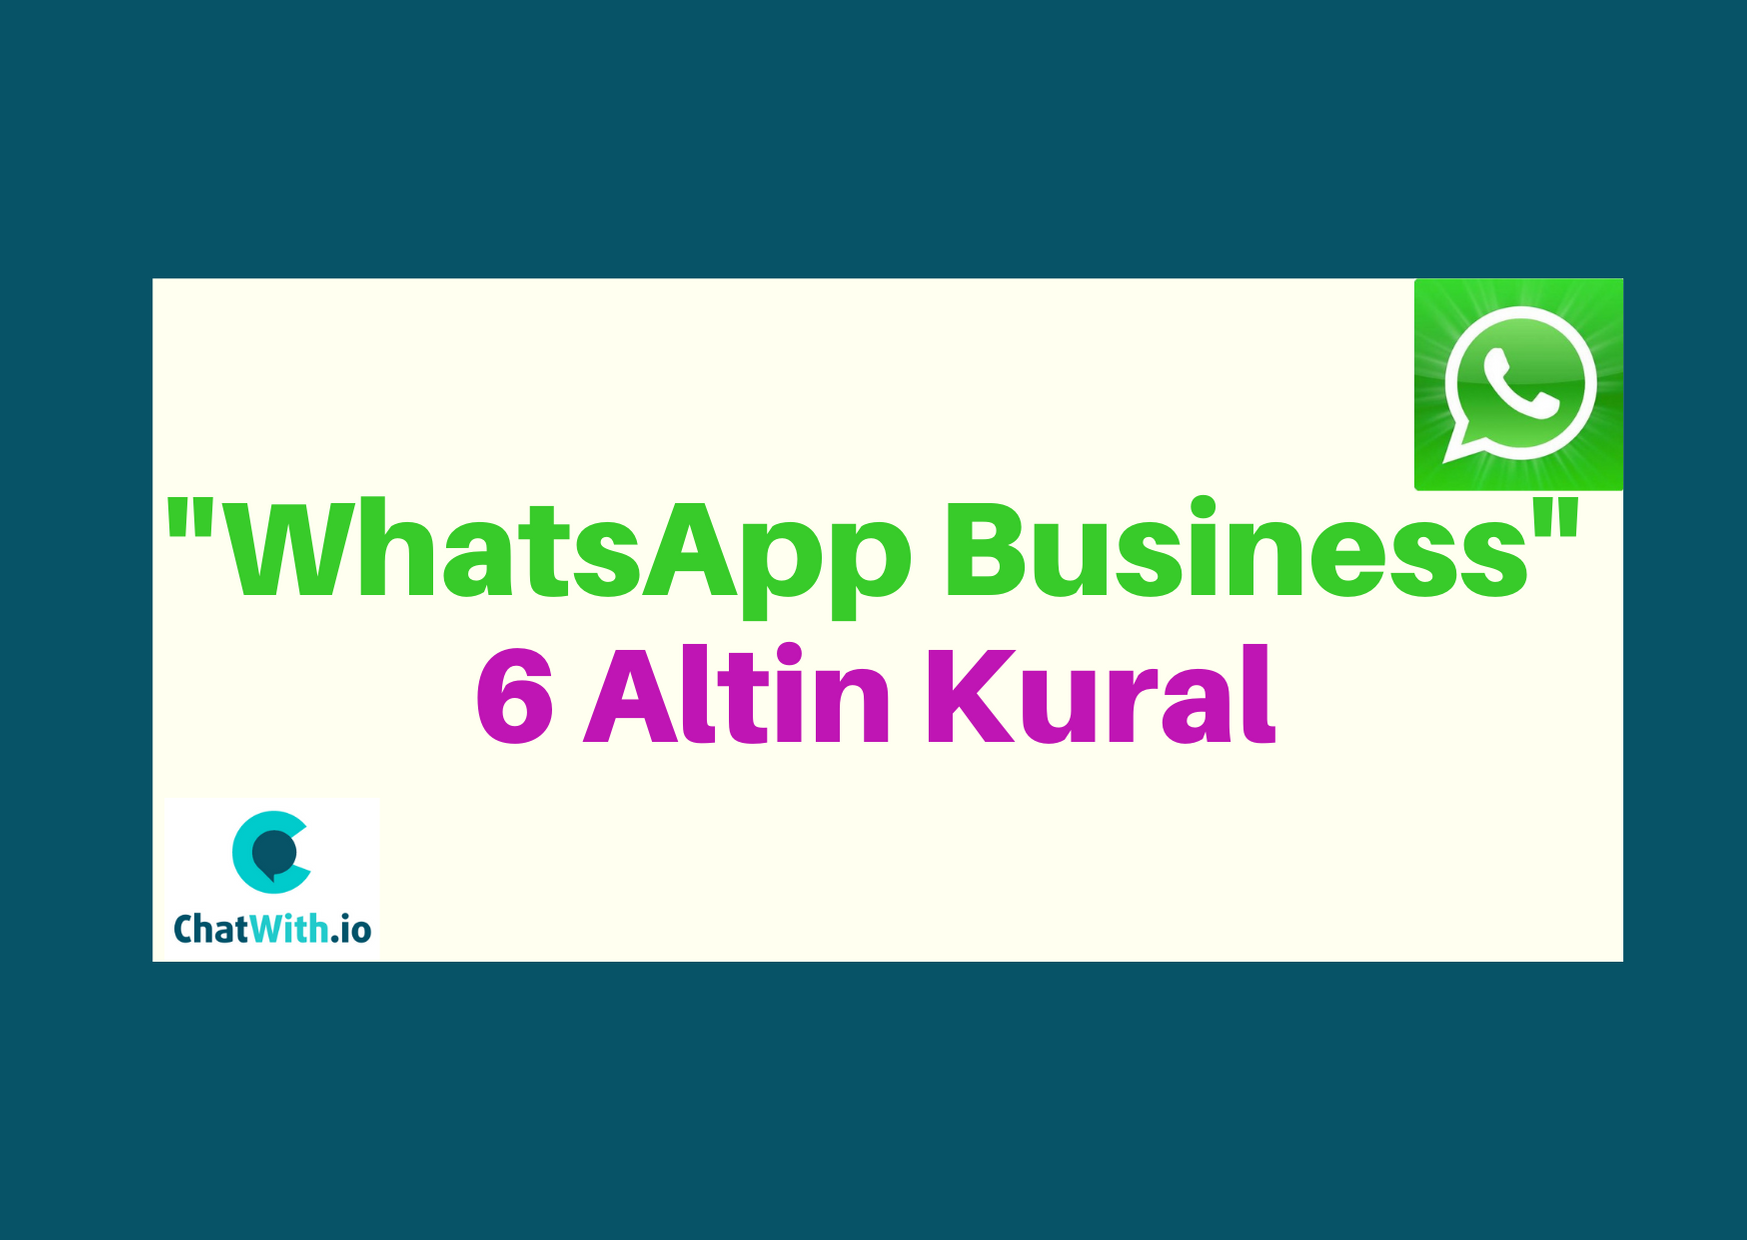 WhatsApp Business 6 Altin Kural